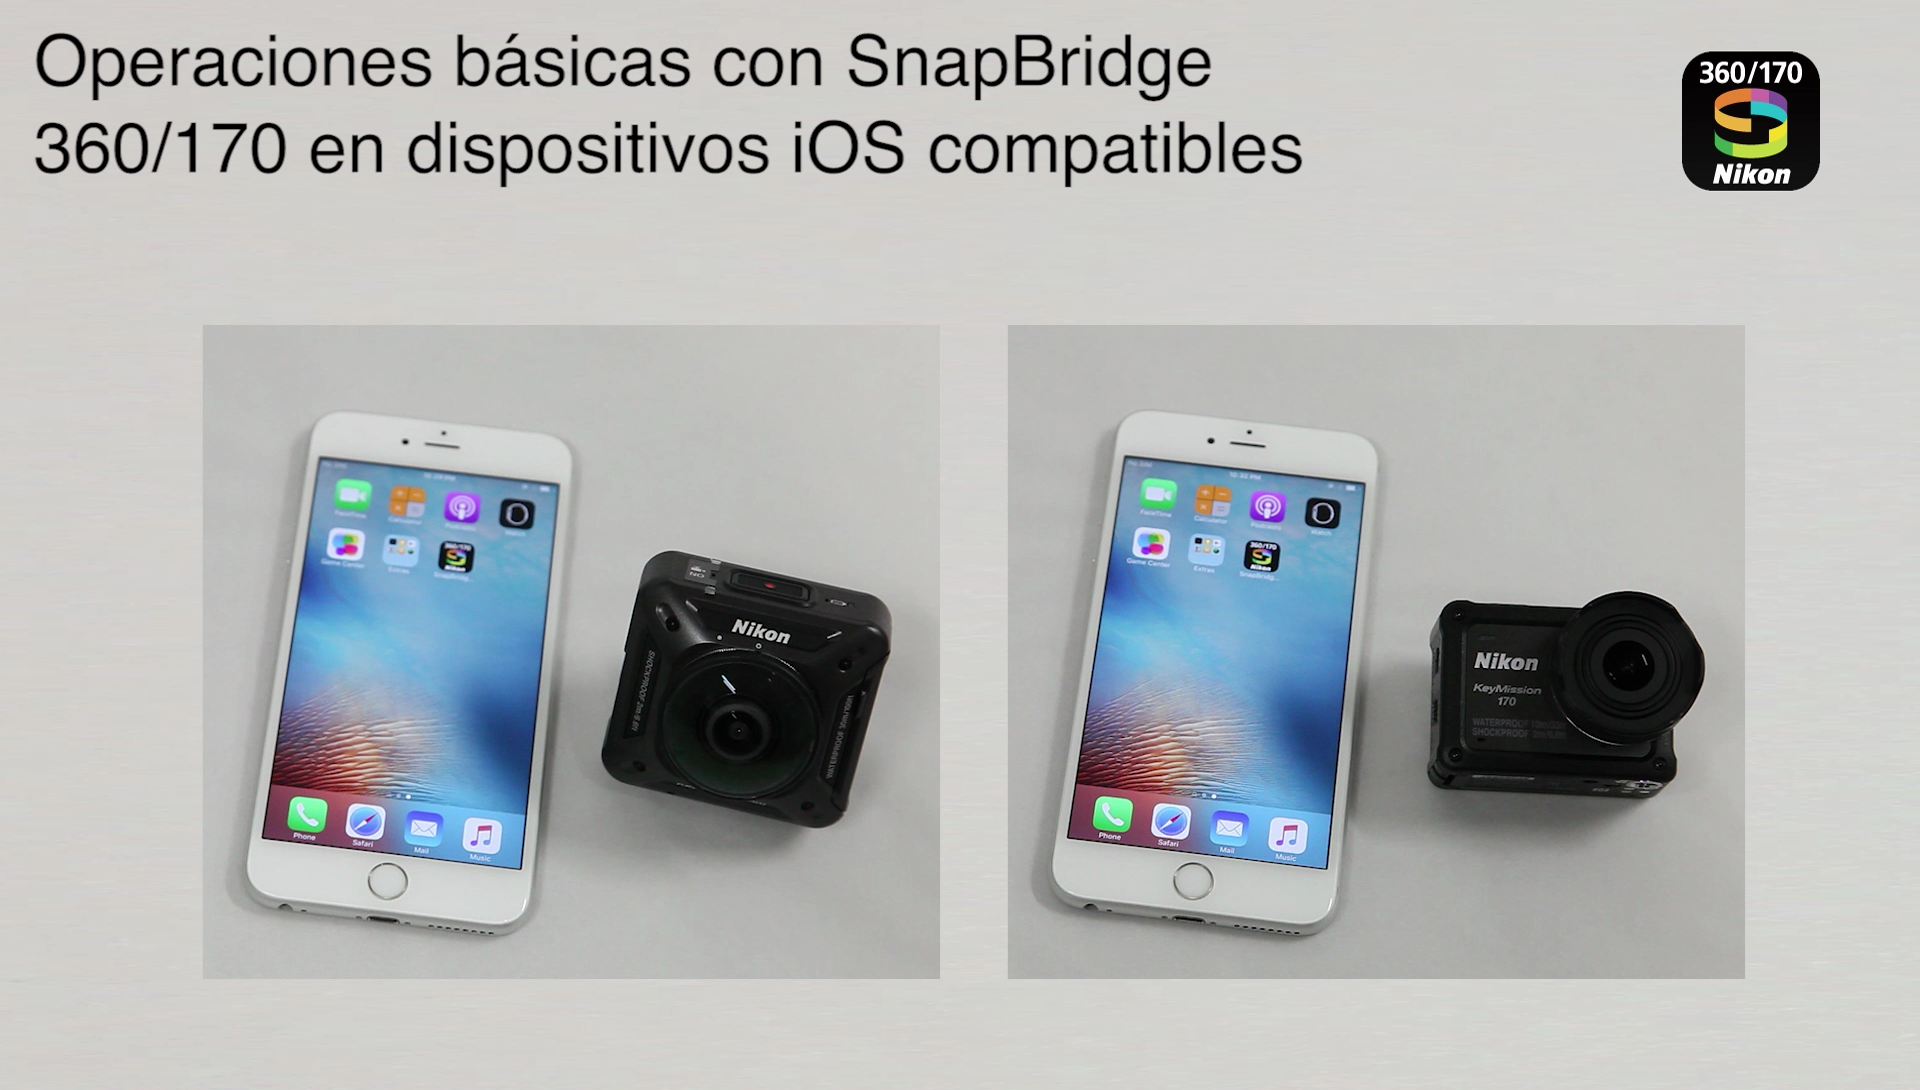 SnapBridge KeyMission 360/170 iOS